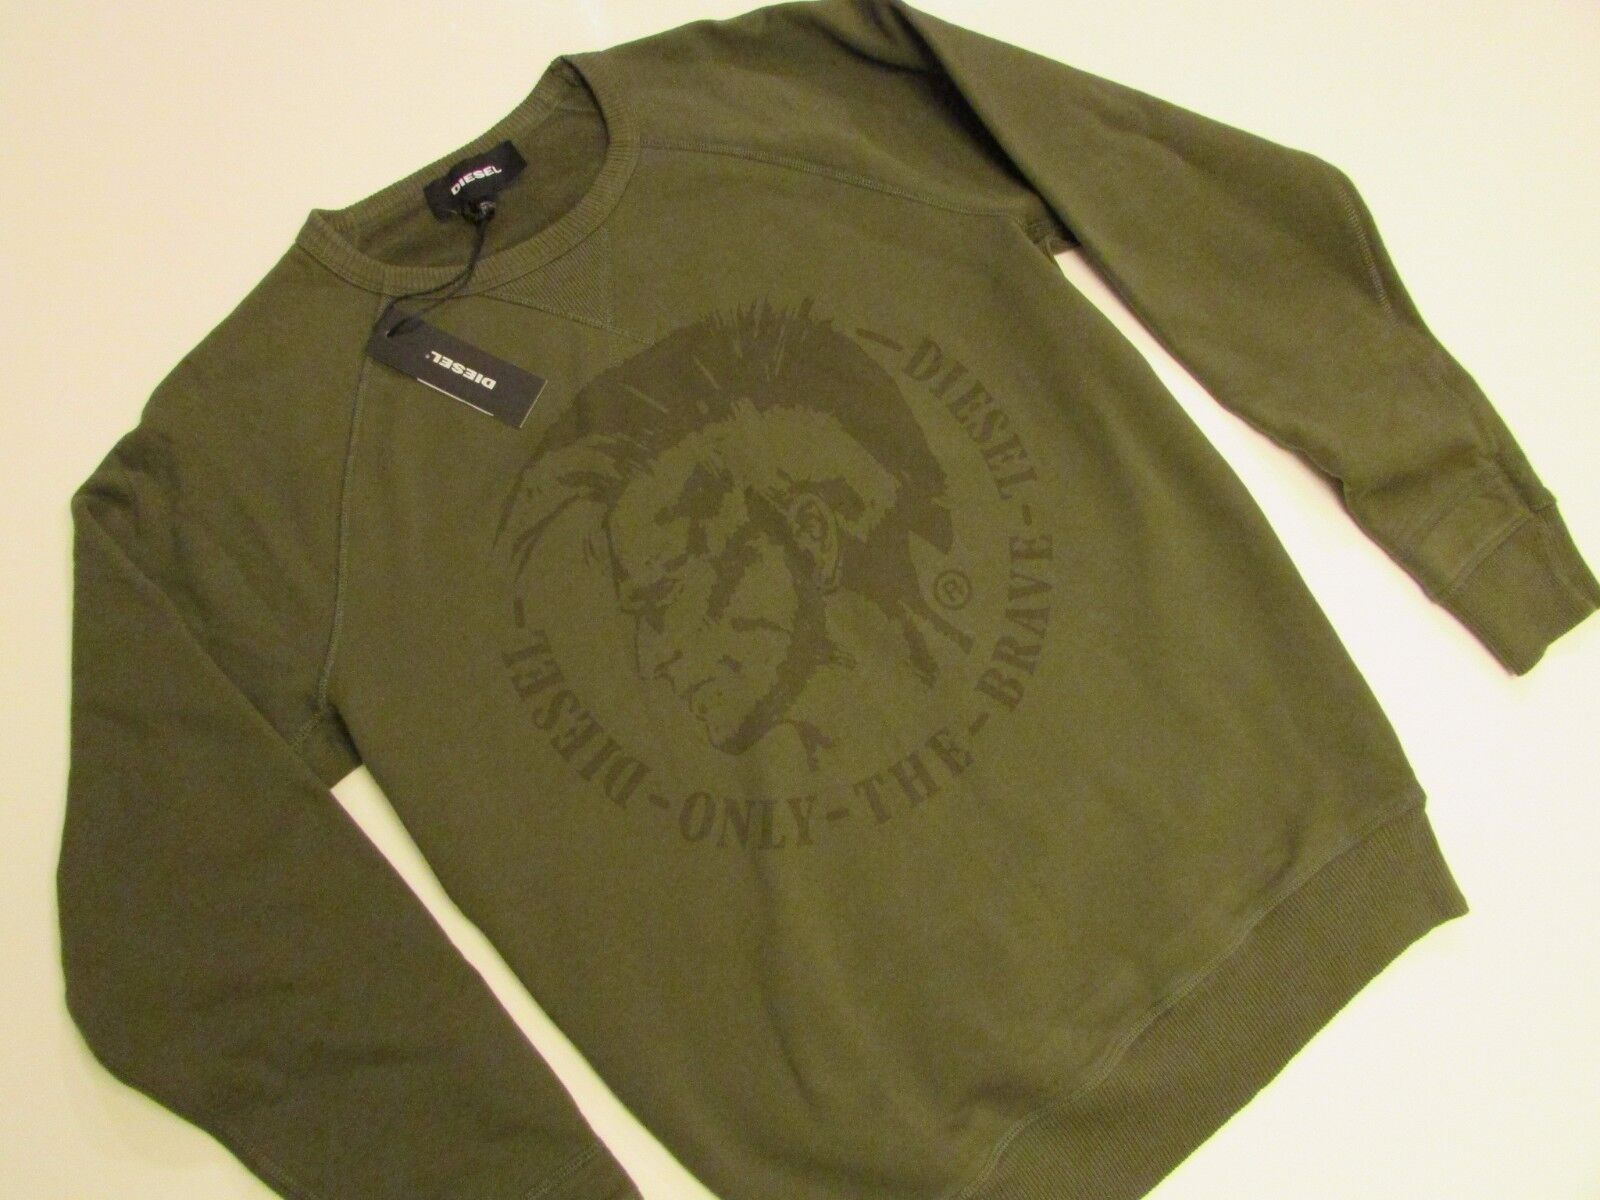 NWT  AUTHENTIC  Diesel S-Orestes Sweat Shirt Olive / Olive Shirt verde / Small e9a8c8